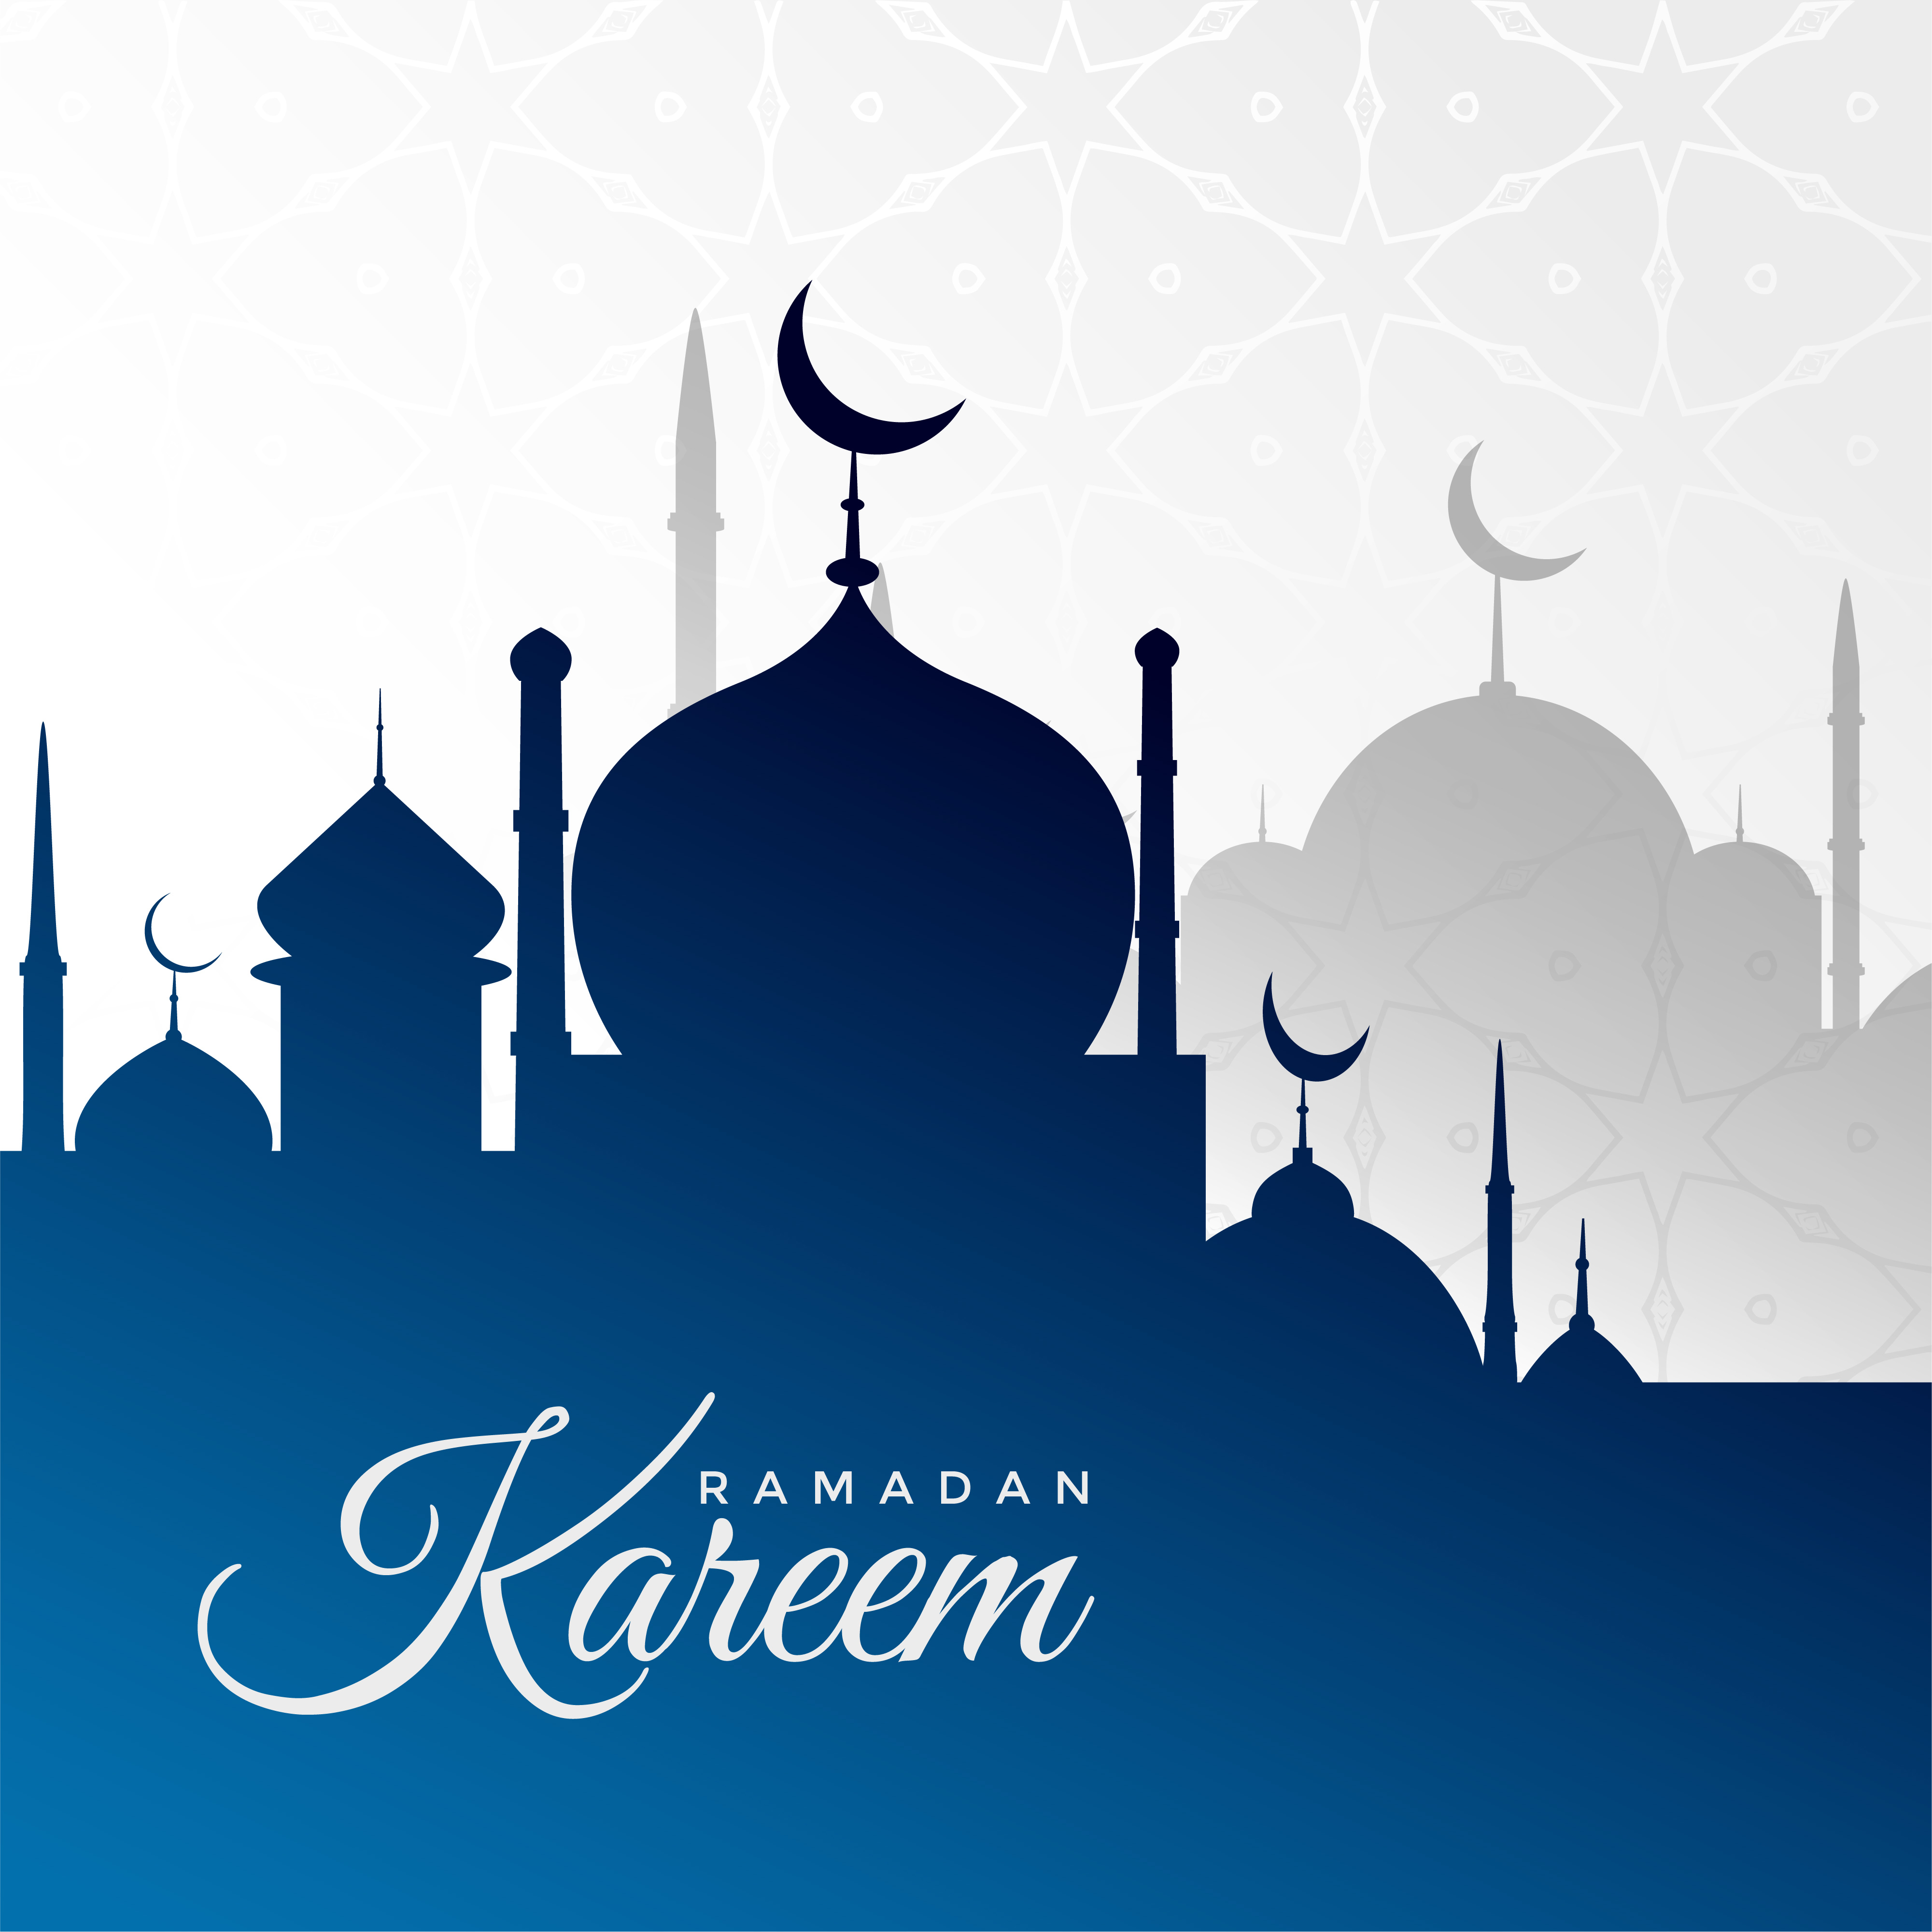 Ramadan Kareem Background With Blue Mosque Silhouette